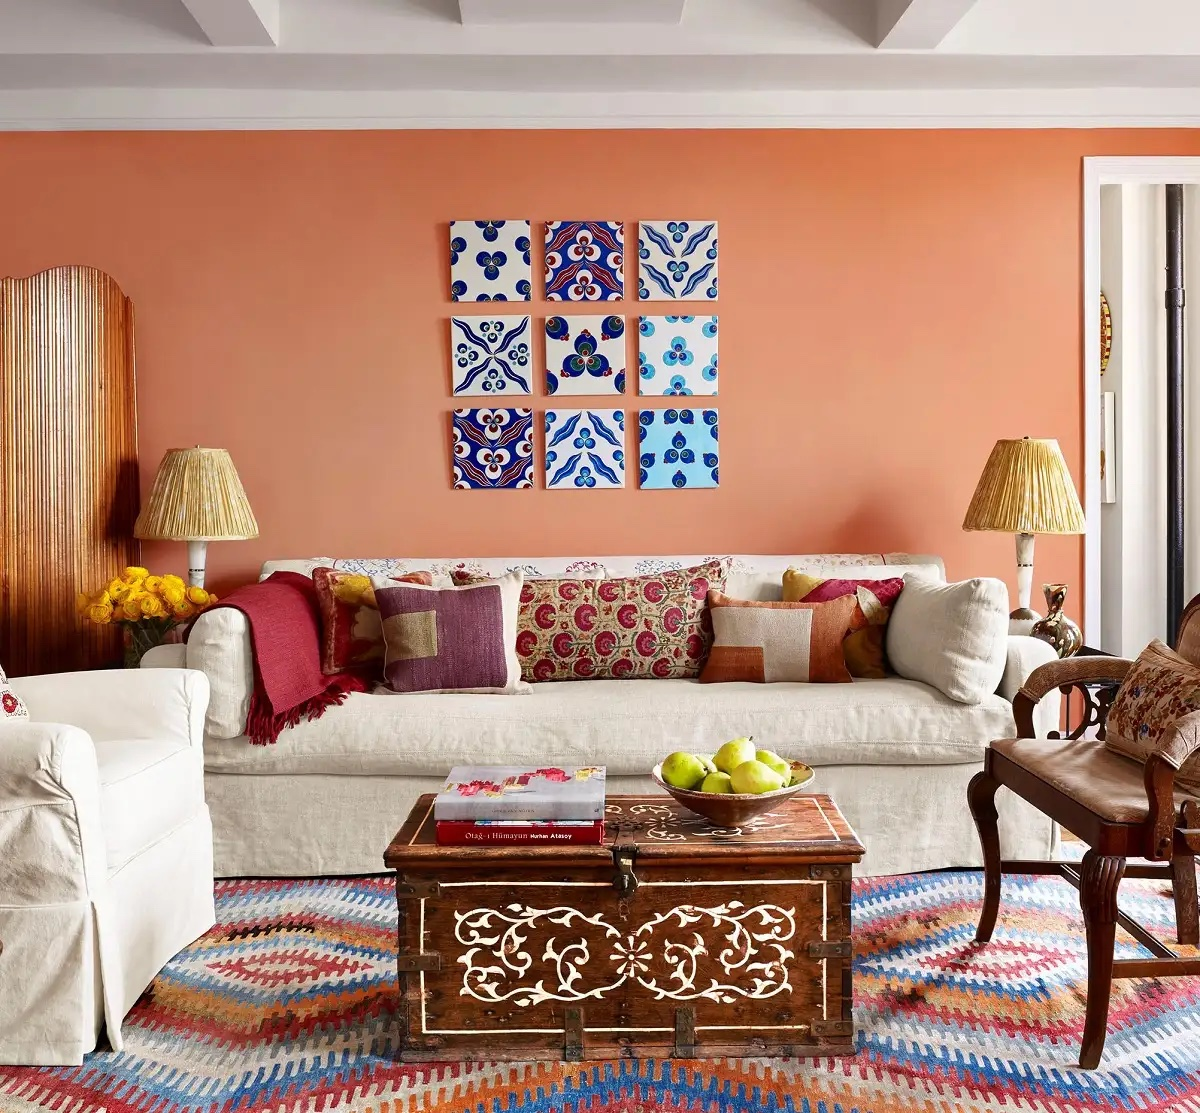 Living room designed by Sara Bengur featuring a colorful Turkish kilim rug